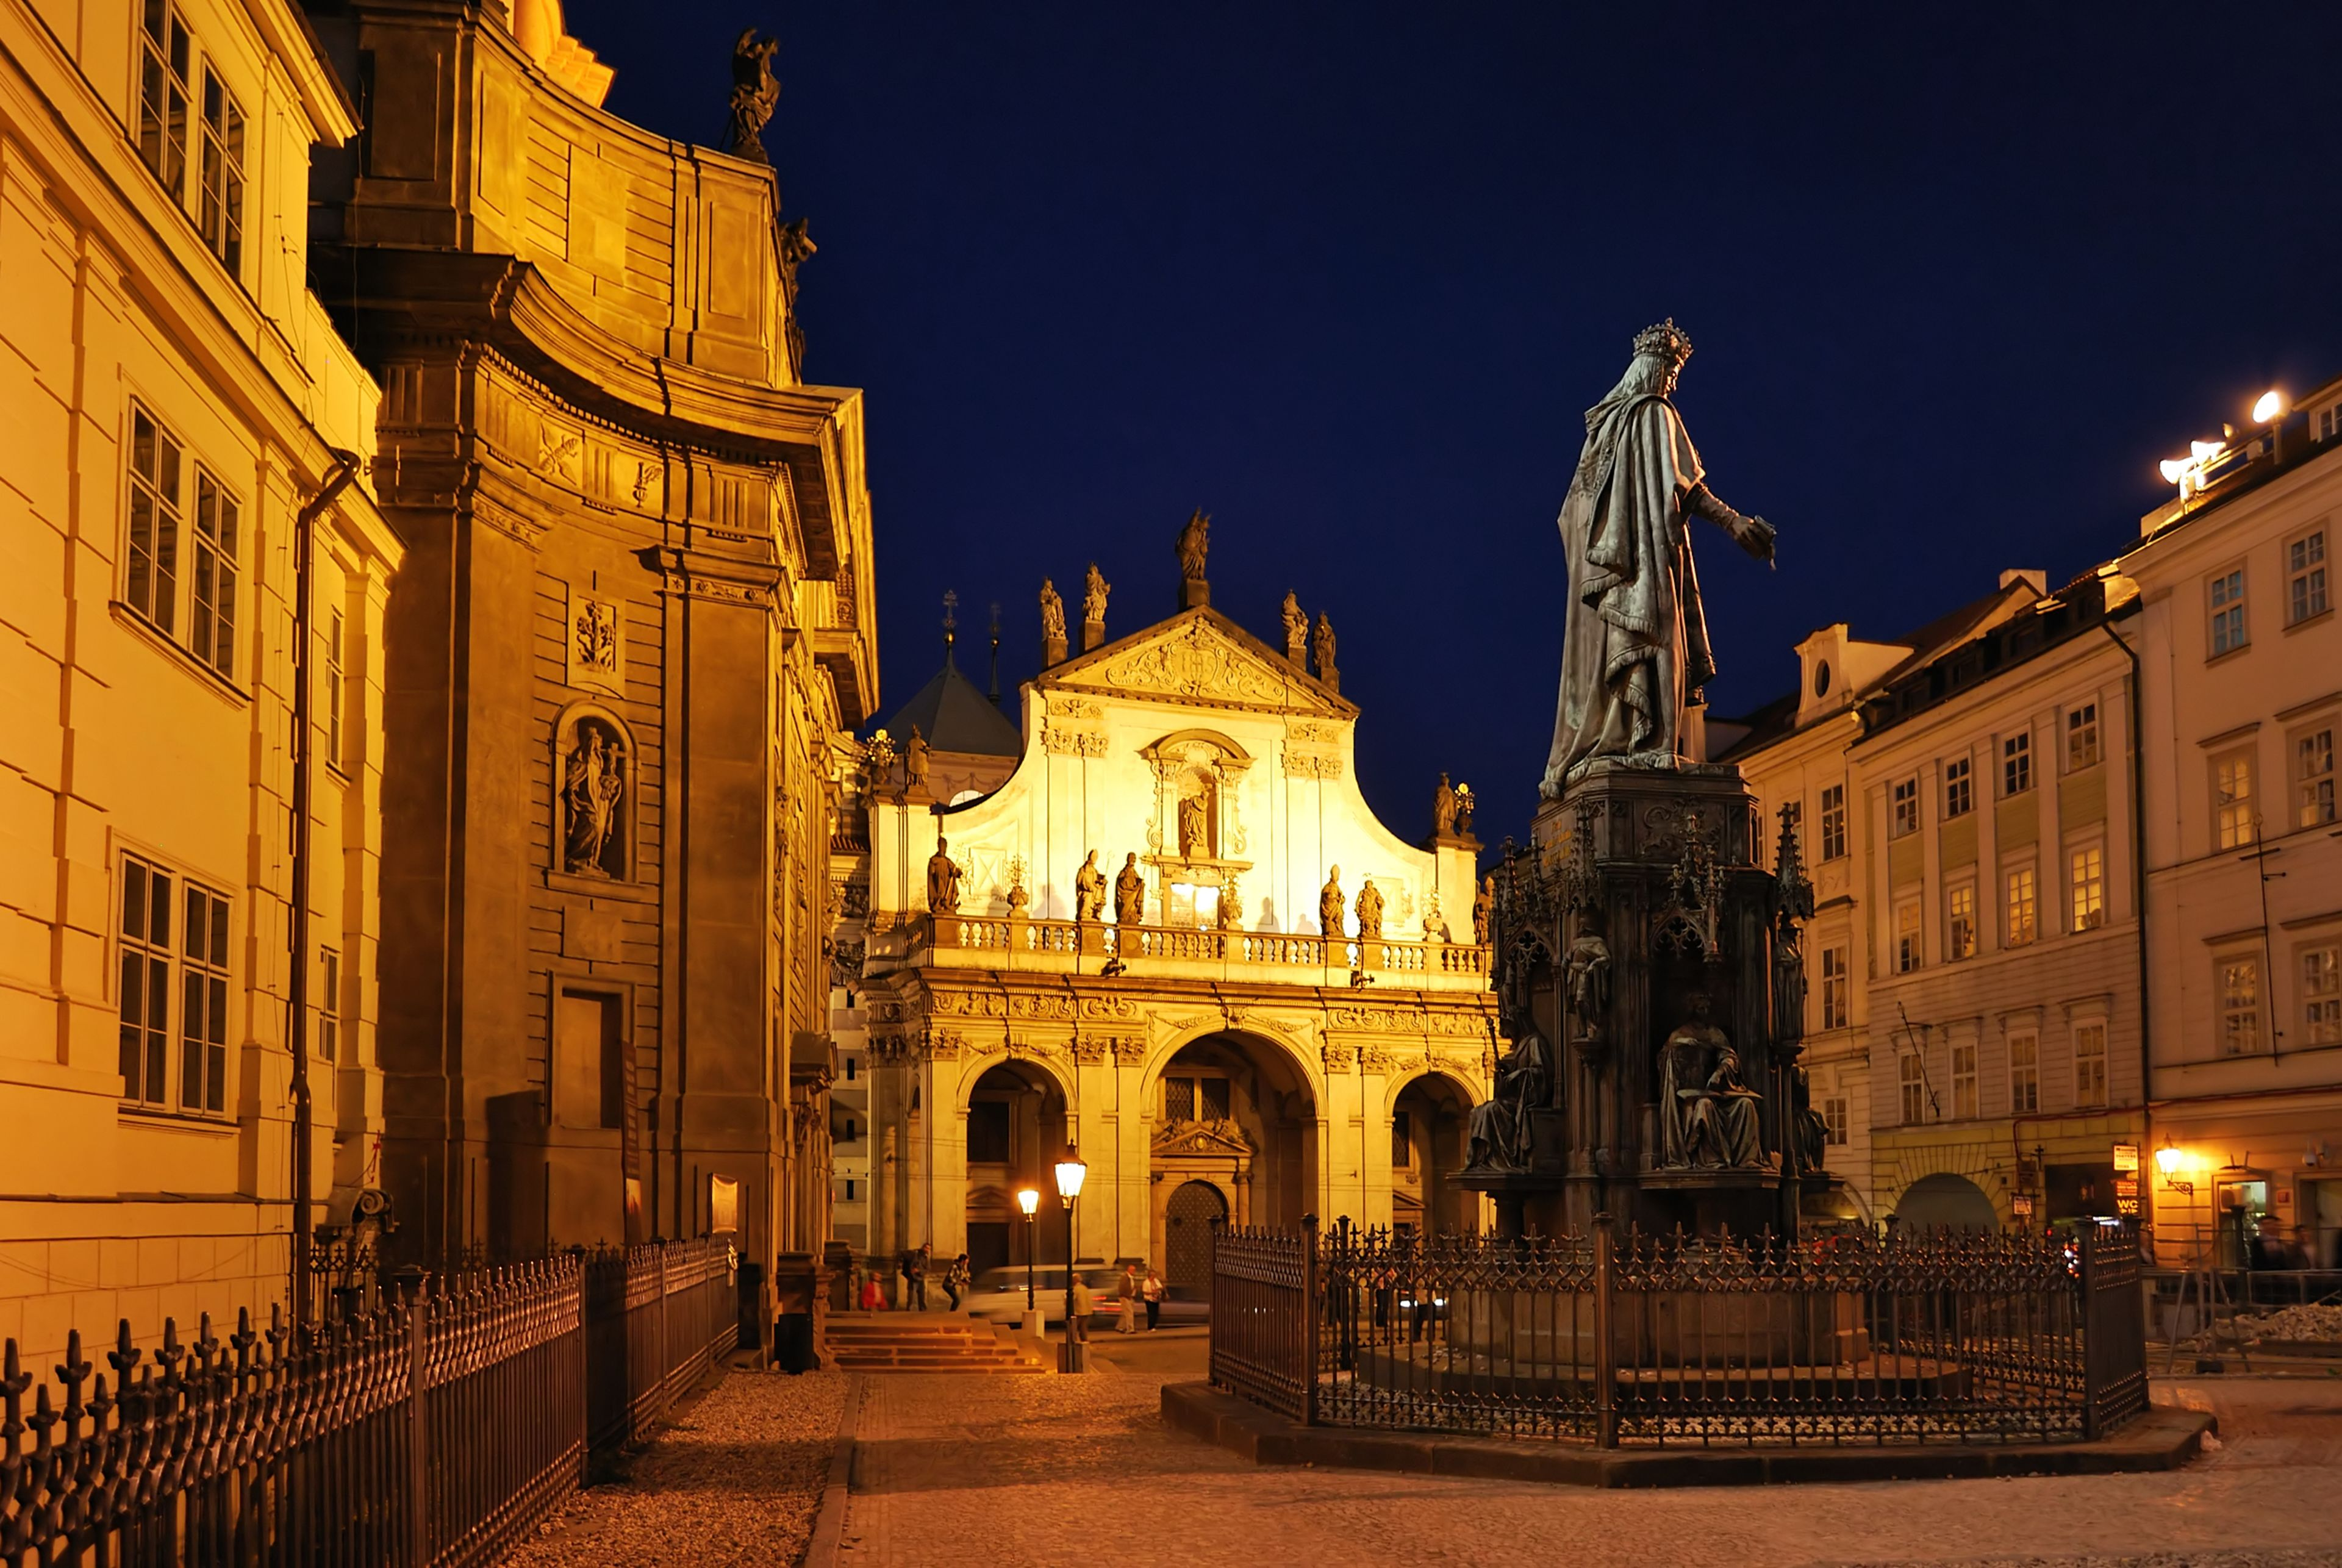 evening view outside of St. Salvator Church in Prague